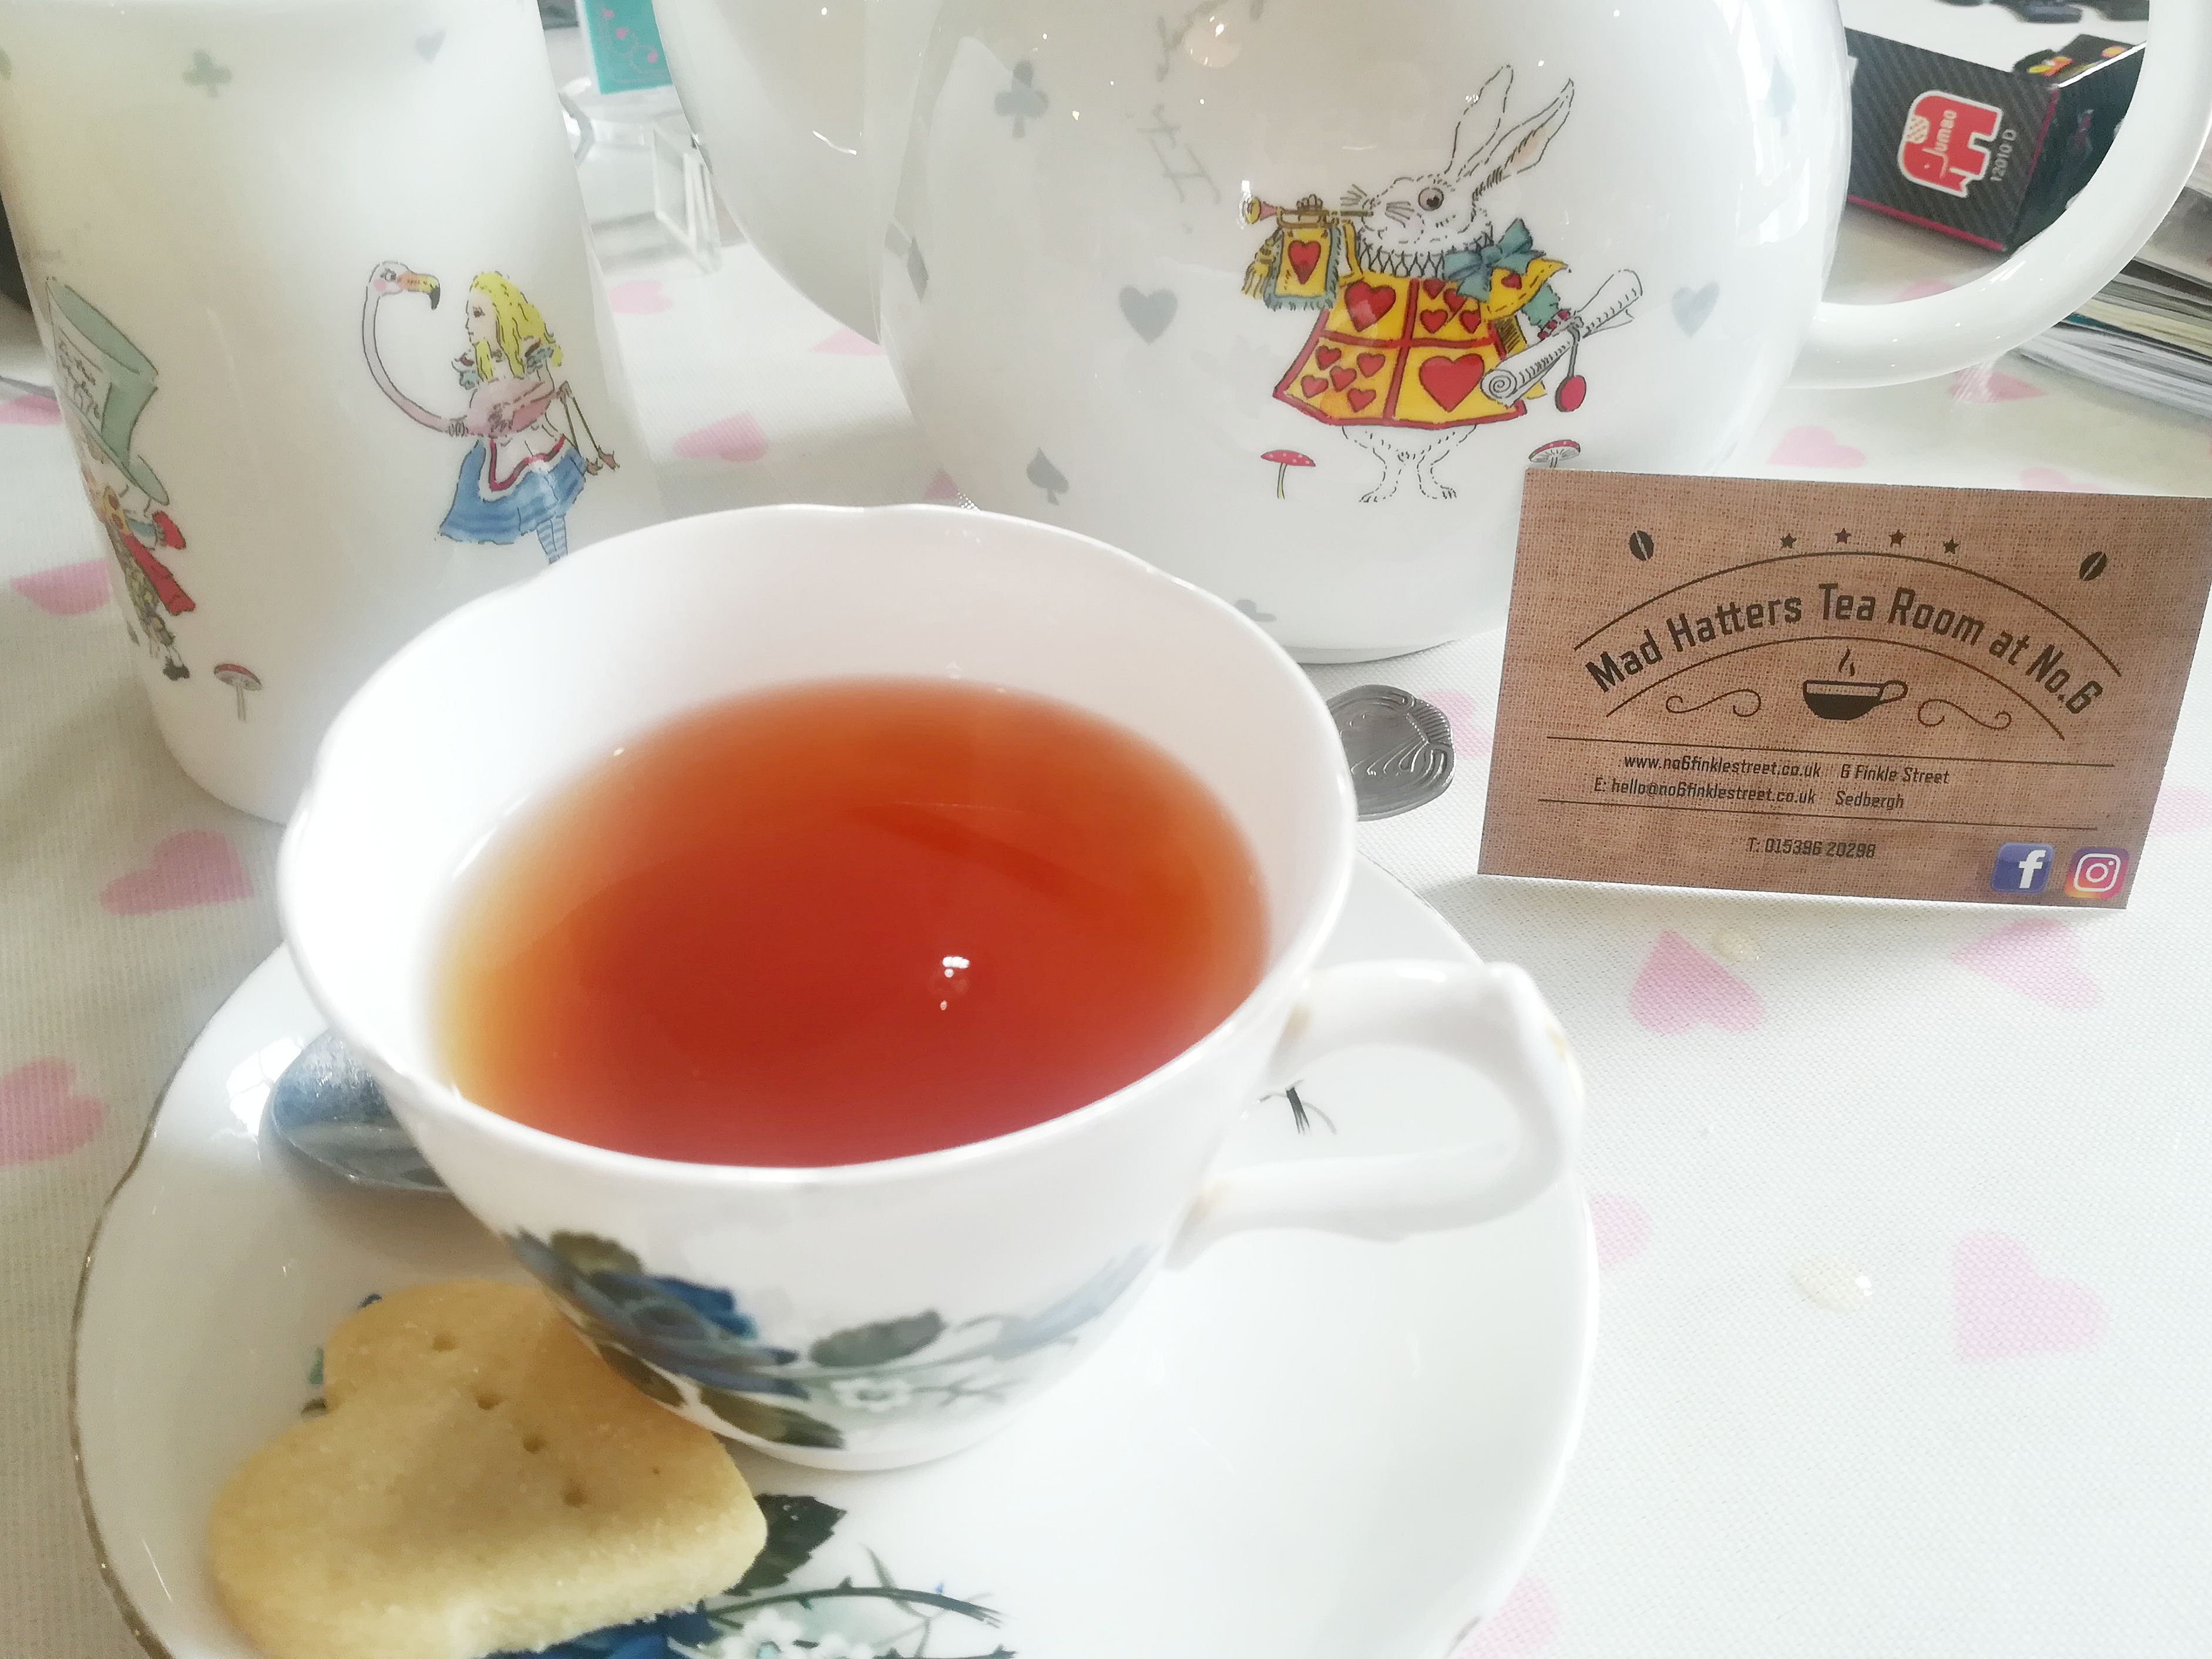 Our 2017 Holiday Blogs || Day 7 || Sedbergh & the Mad Hatters Tea Room